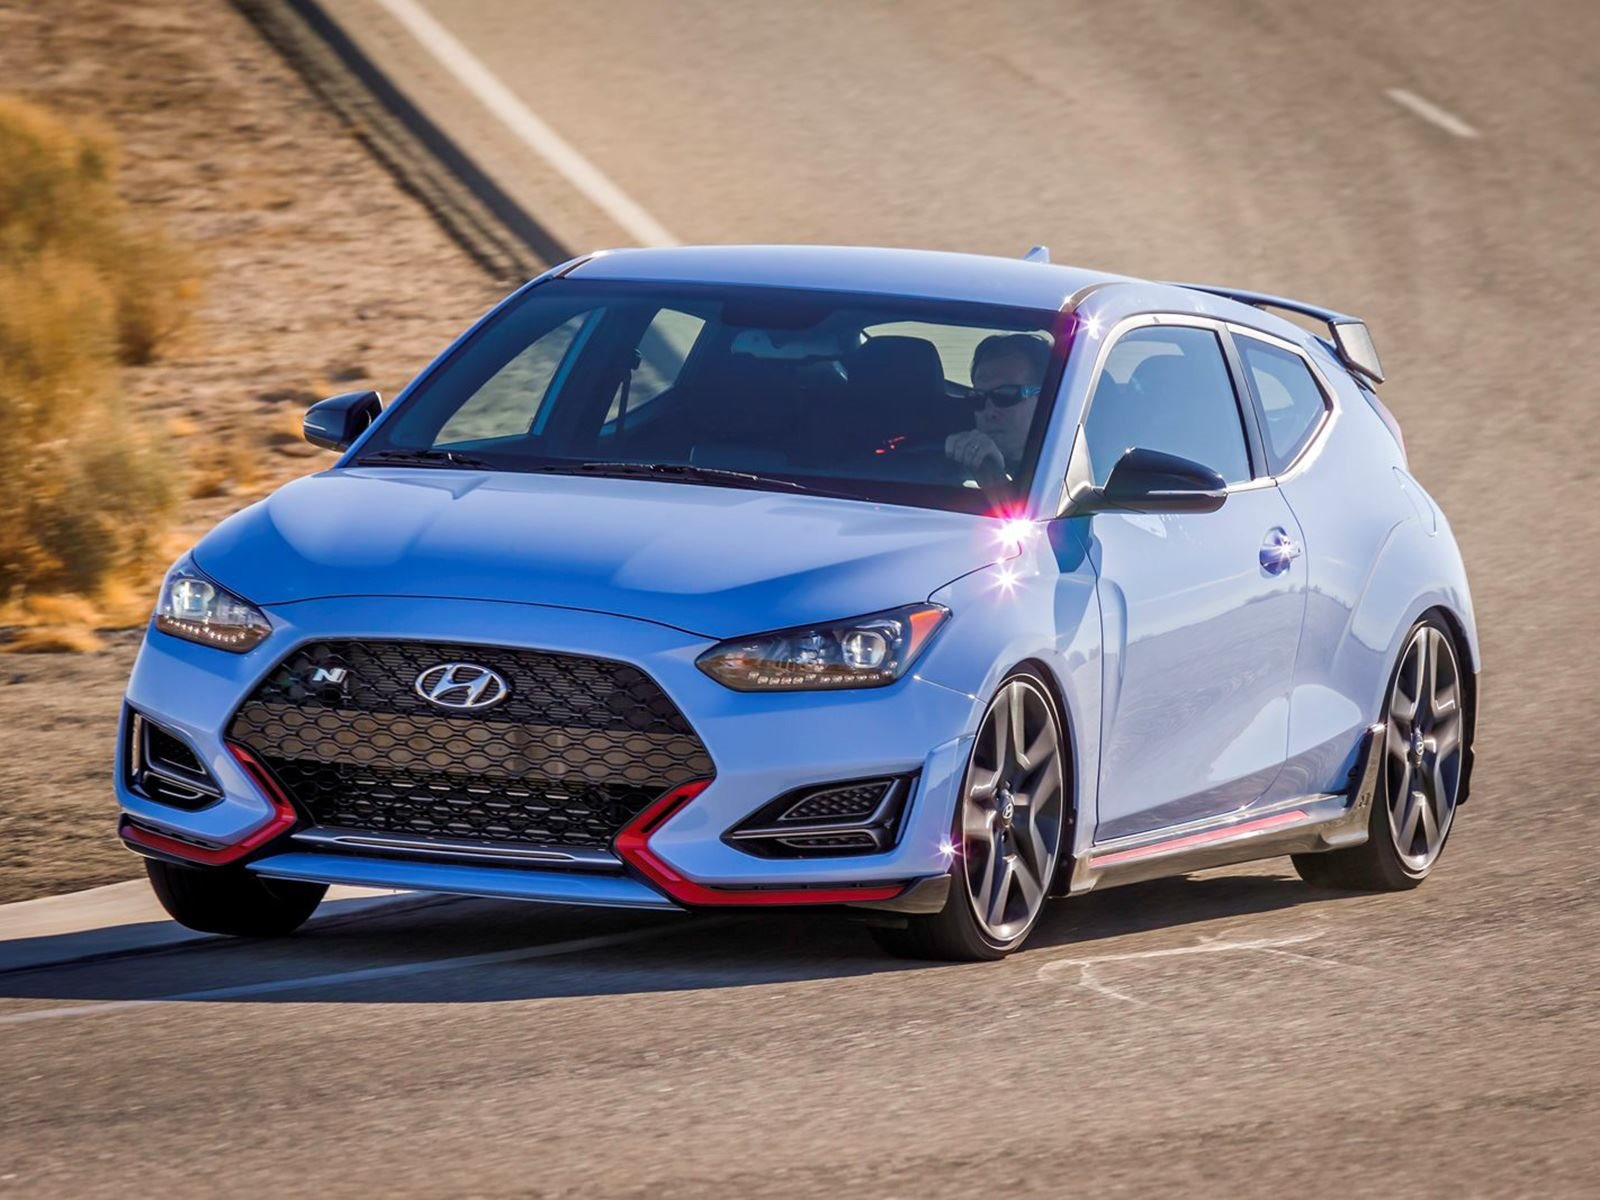 Get Ready To Deck Out Your Hyundai With N Performance Parts